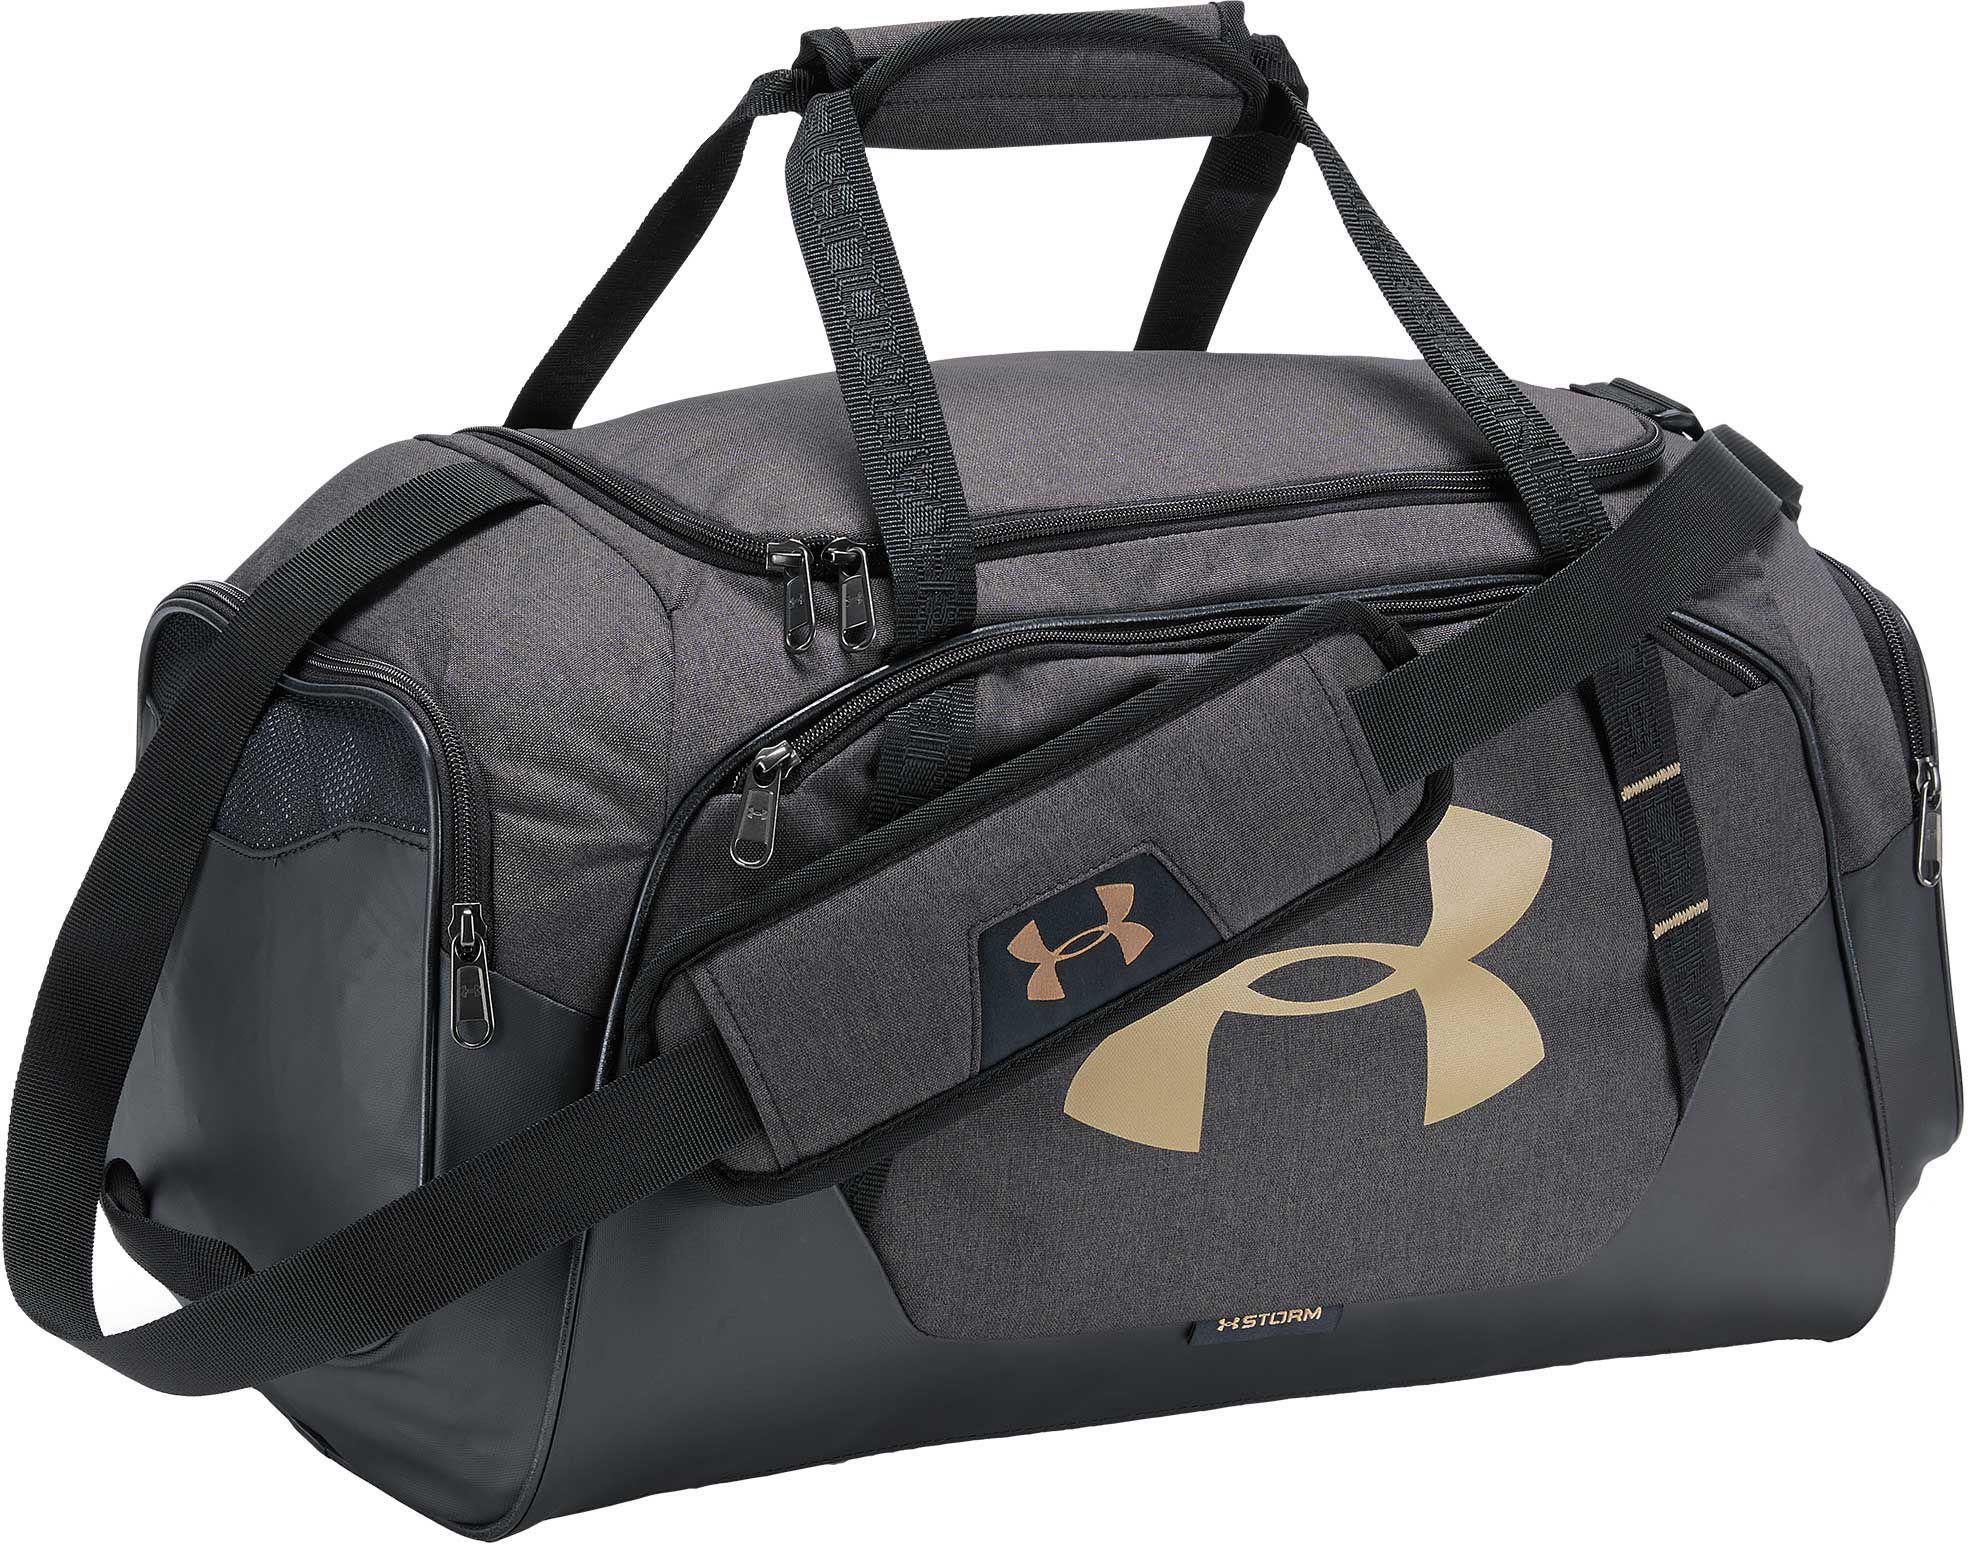 Lyst - Under Armour Undeniable 3.0 Small Duffle Bag in Black for Men 01c74376c2fe4